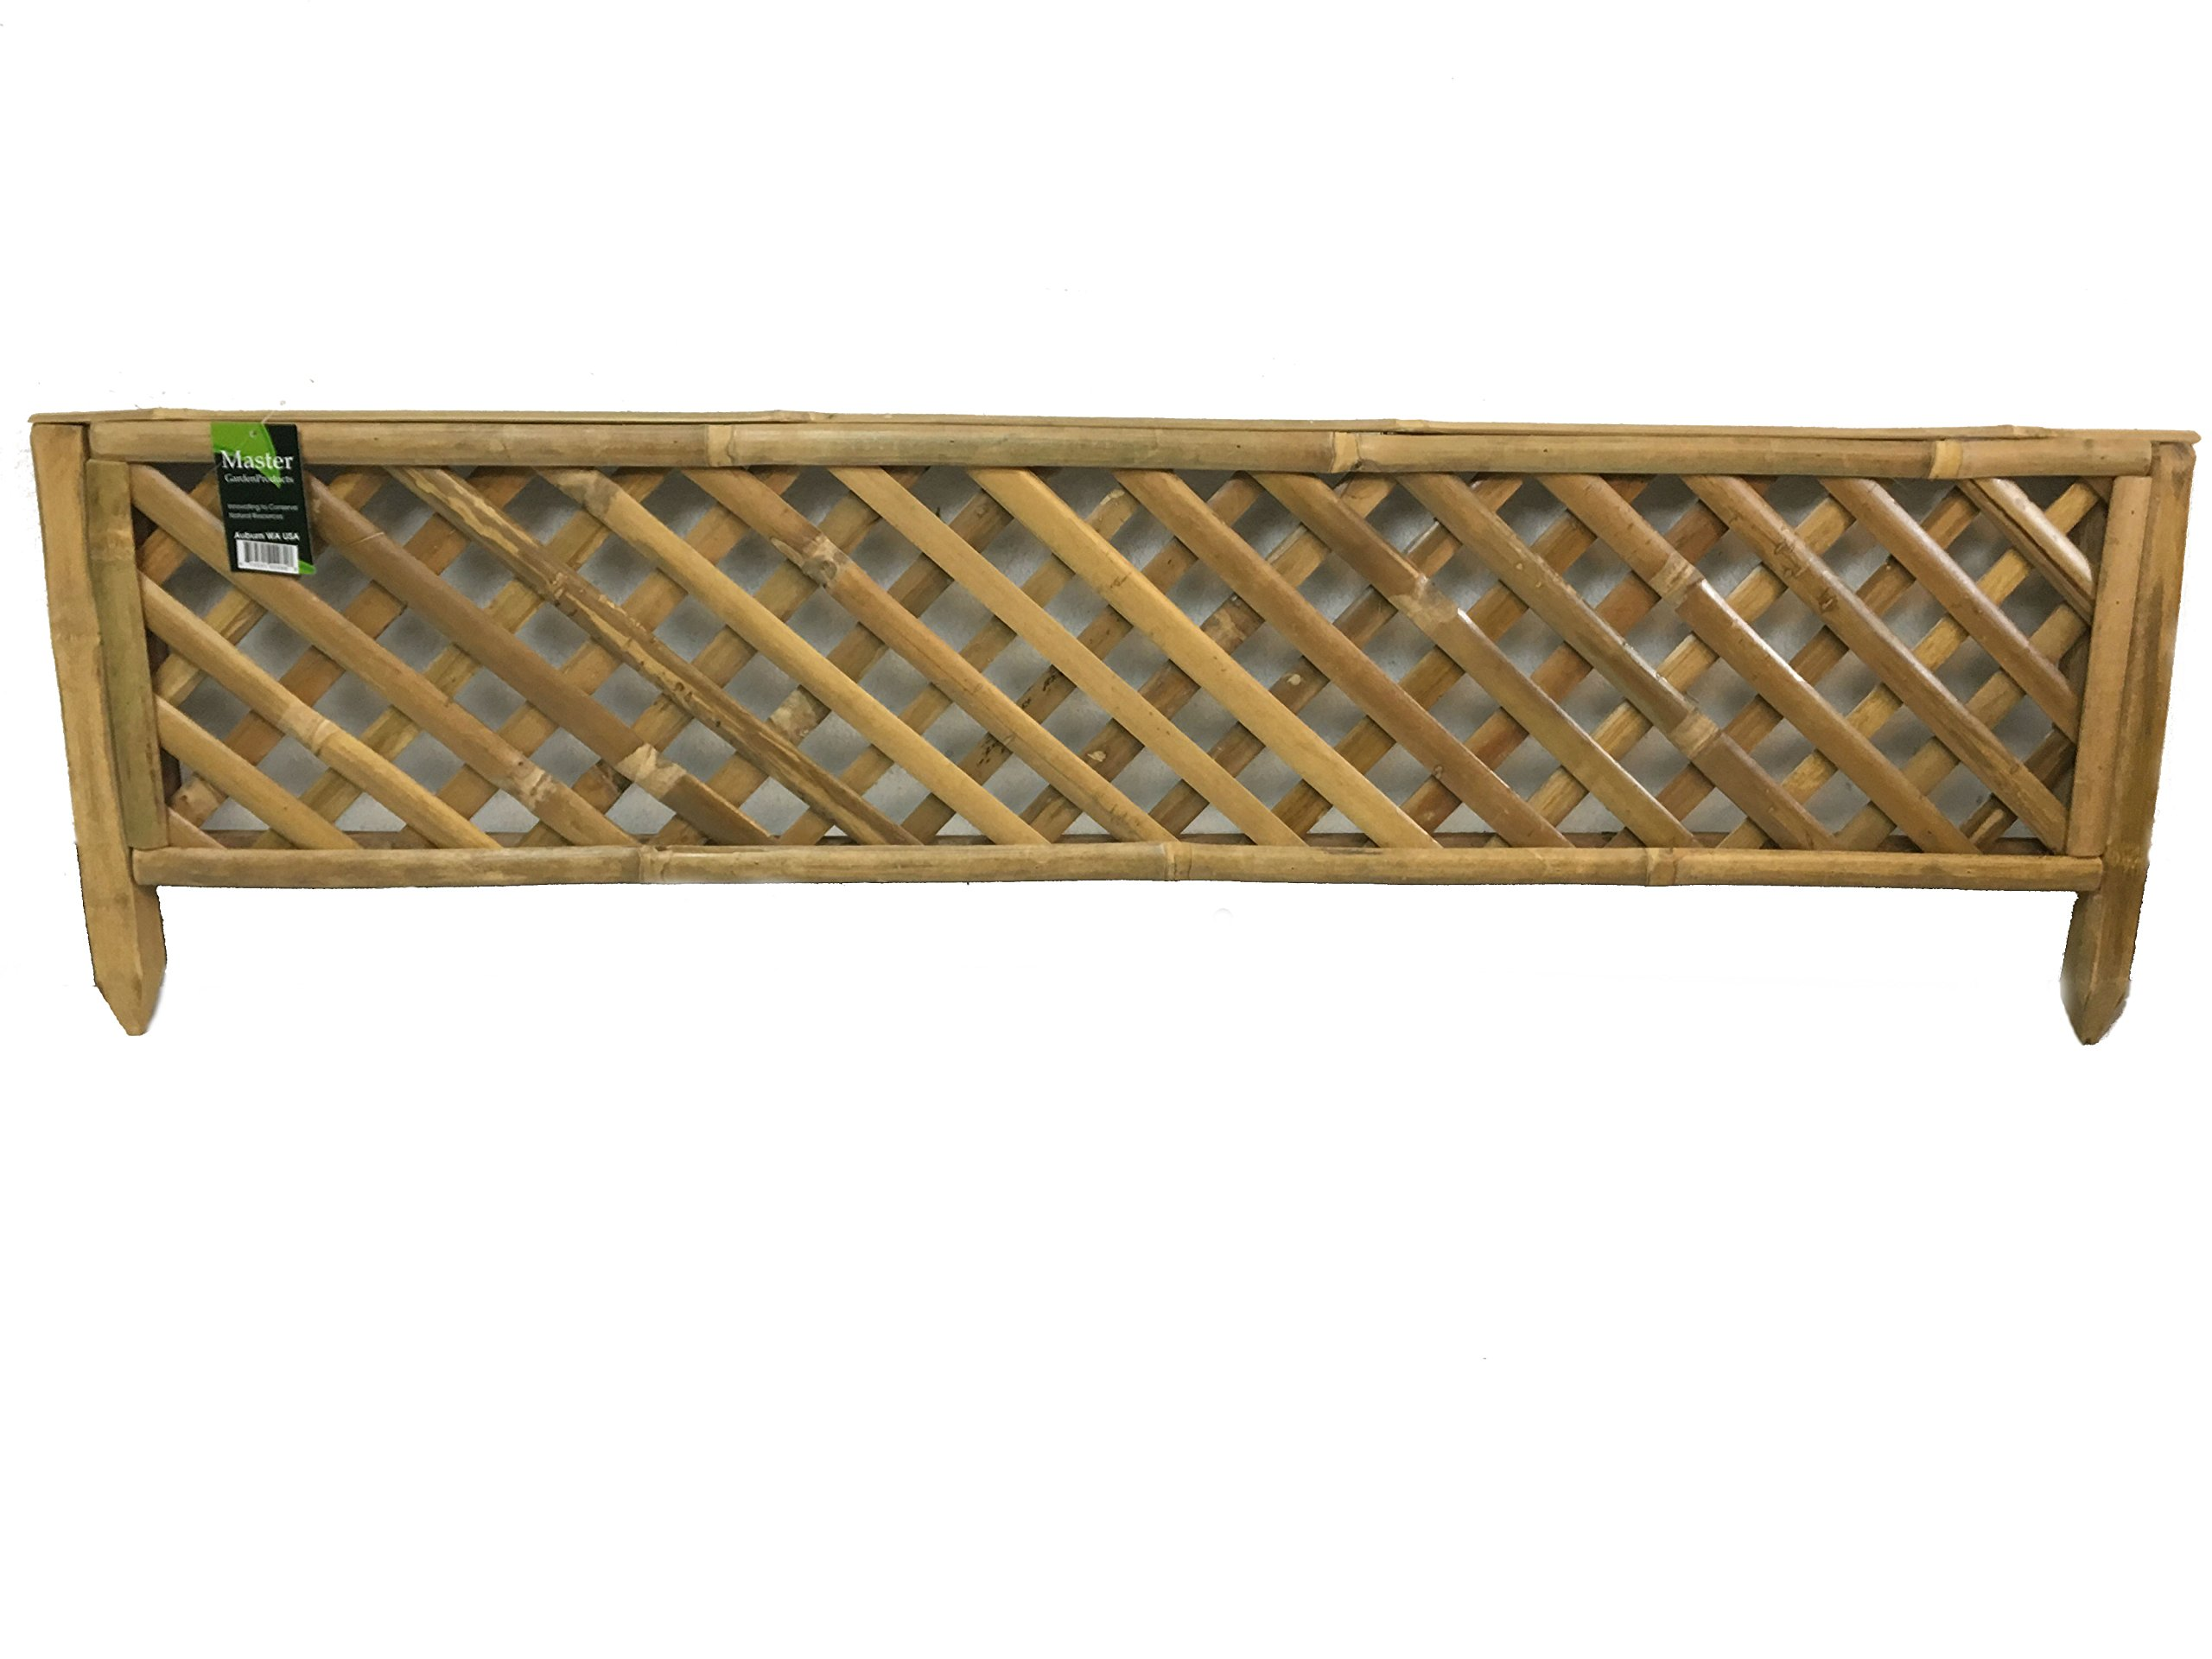 Master Garden Products Woven Bamboo Edging Trellis Panel 48'' W x 14'' H